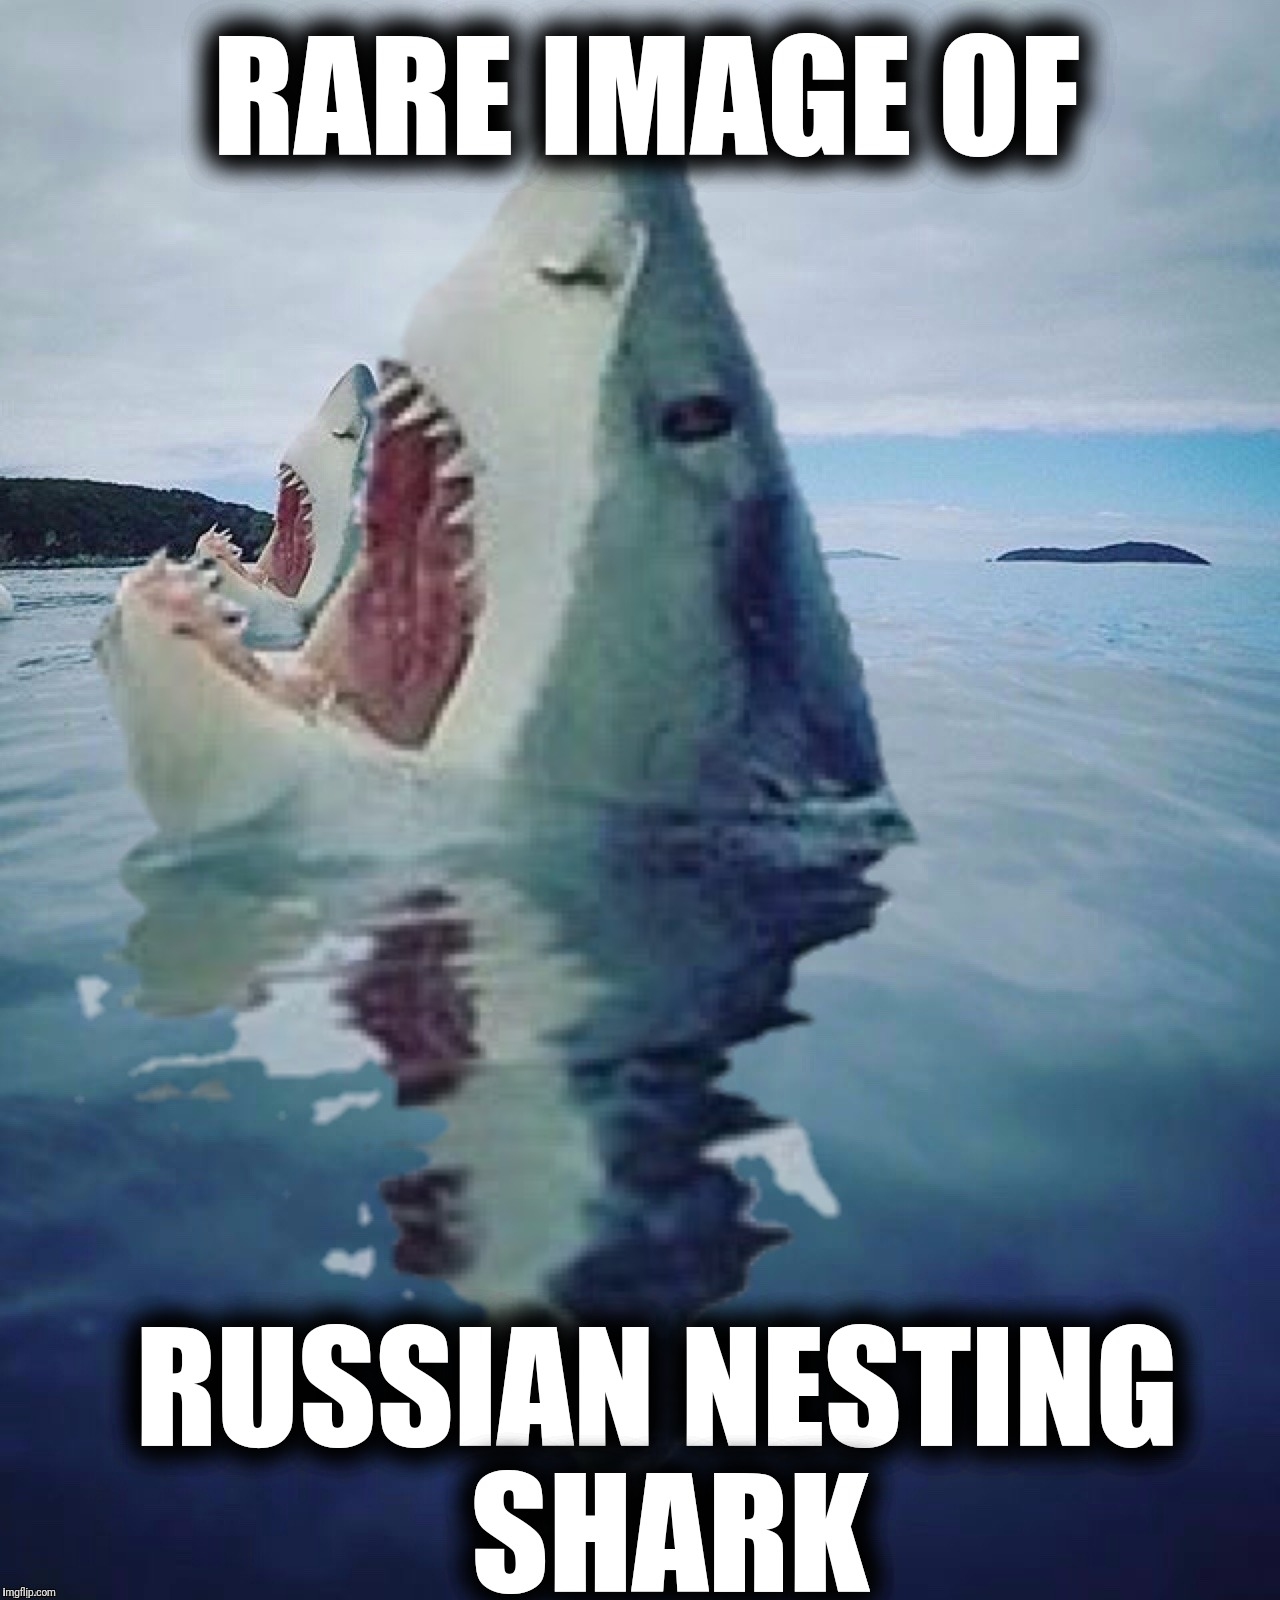 RARE IMAGE OF RUSSIAN NESTING SHARK | made w/ Imgflip meme maker